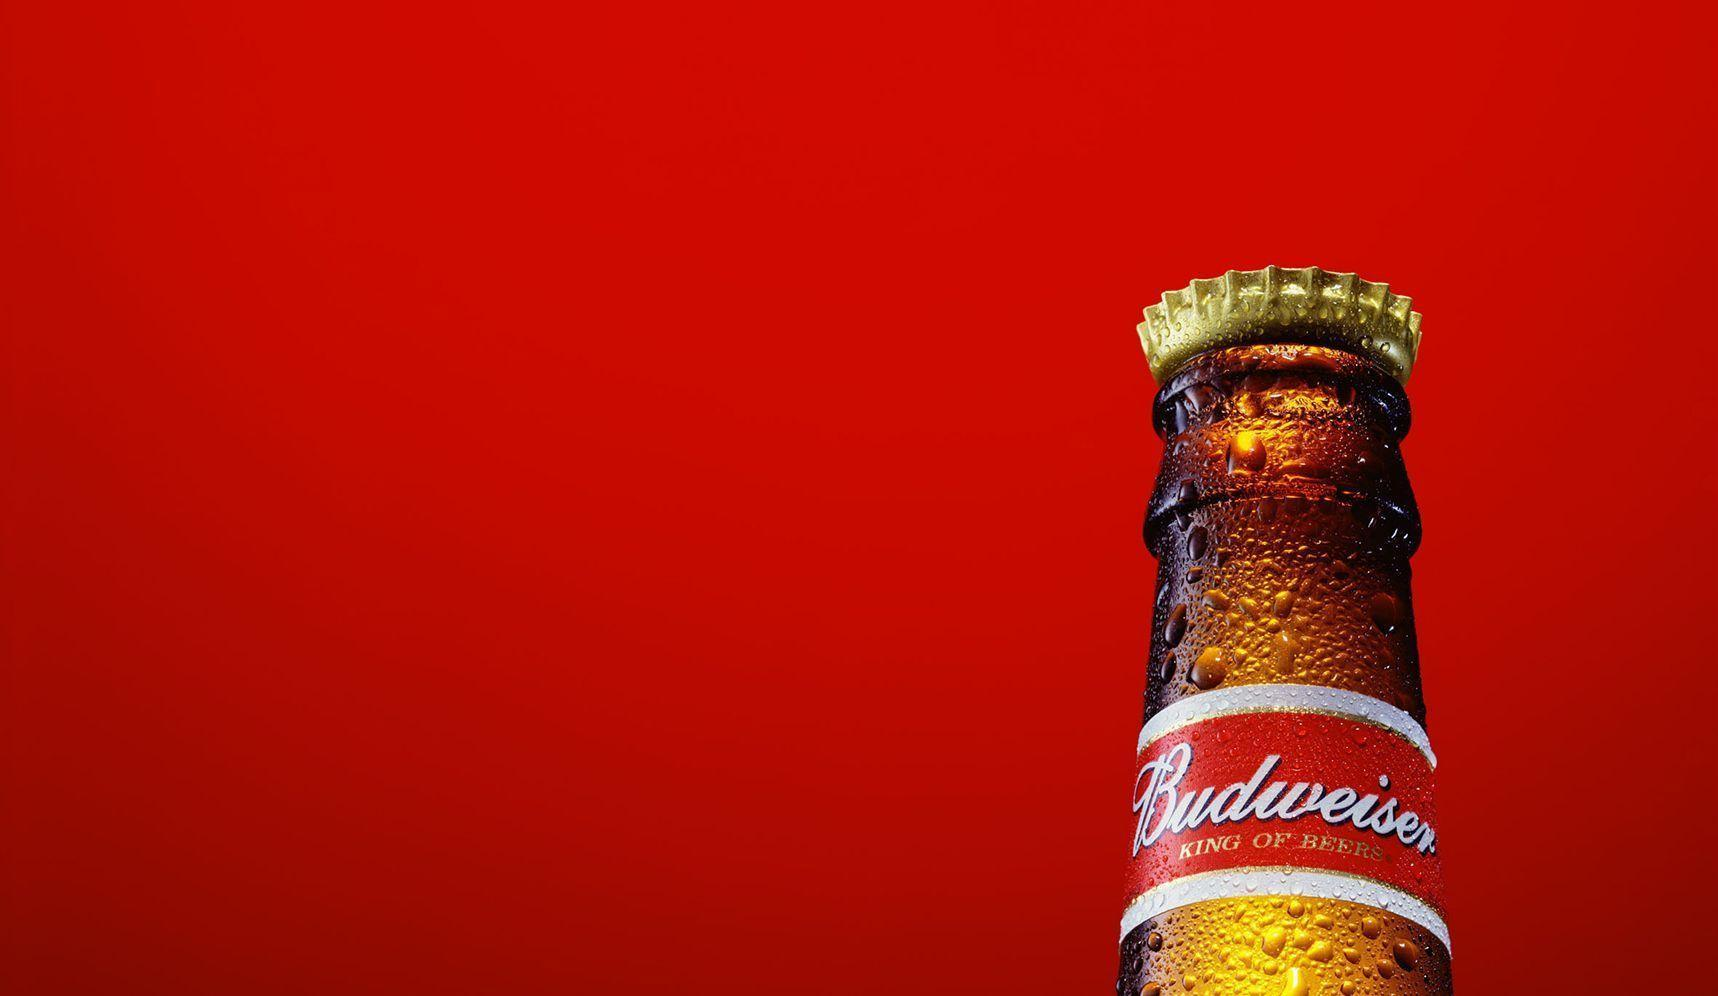 repositioning budweiser to women You searched for: budweiser girl etsy is the home to thousands of handmade, vintage, and one-of-a-kind products related to your search no matter what you're looking for or where you are in the world, our global marketplace of sellers can help you find unique and affordable options.